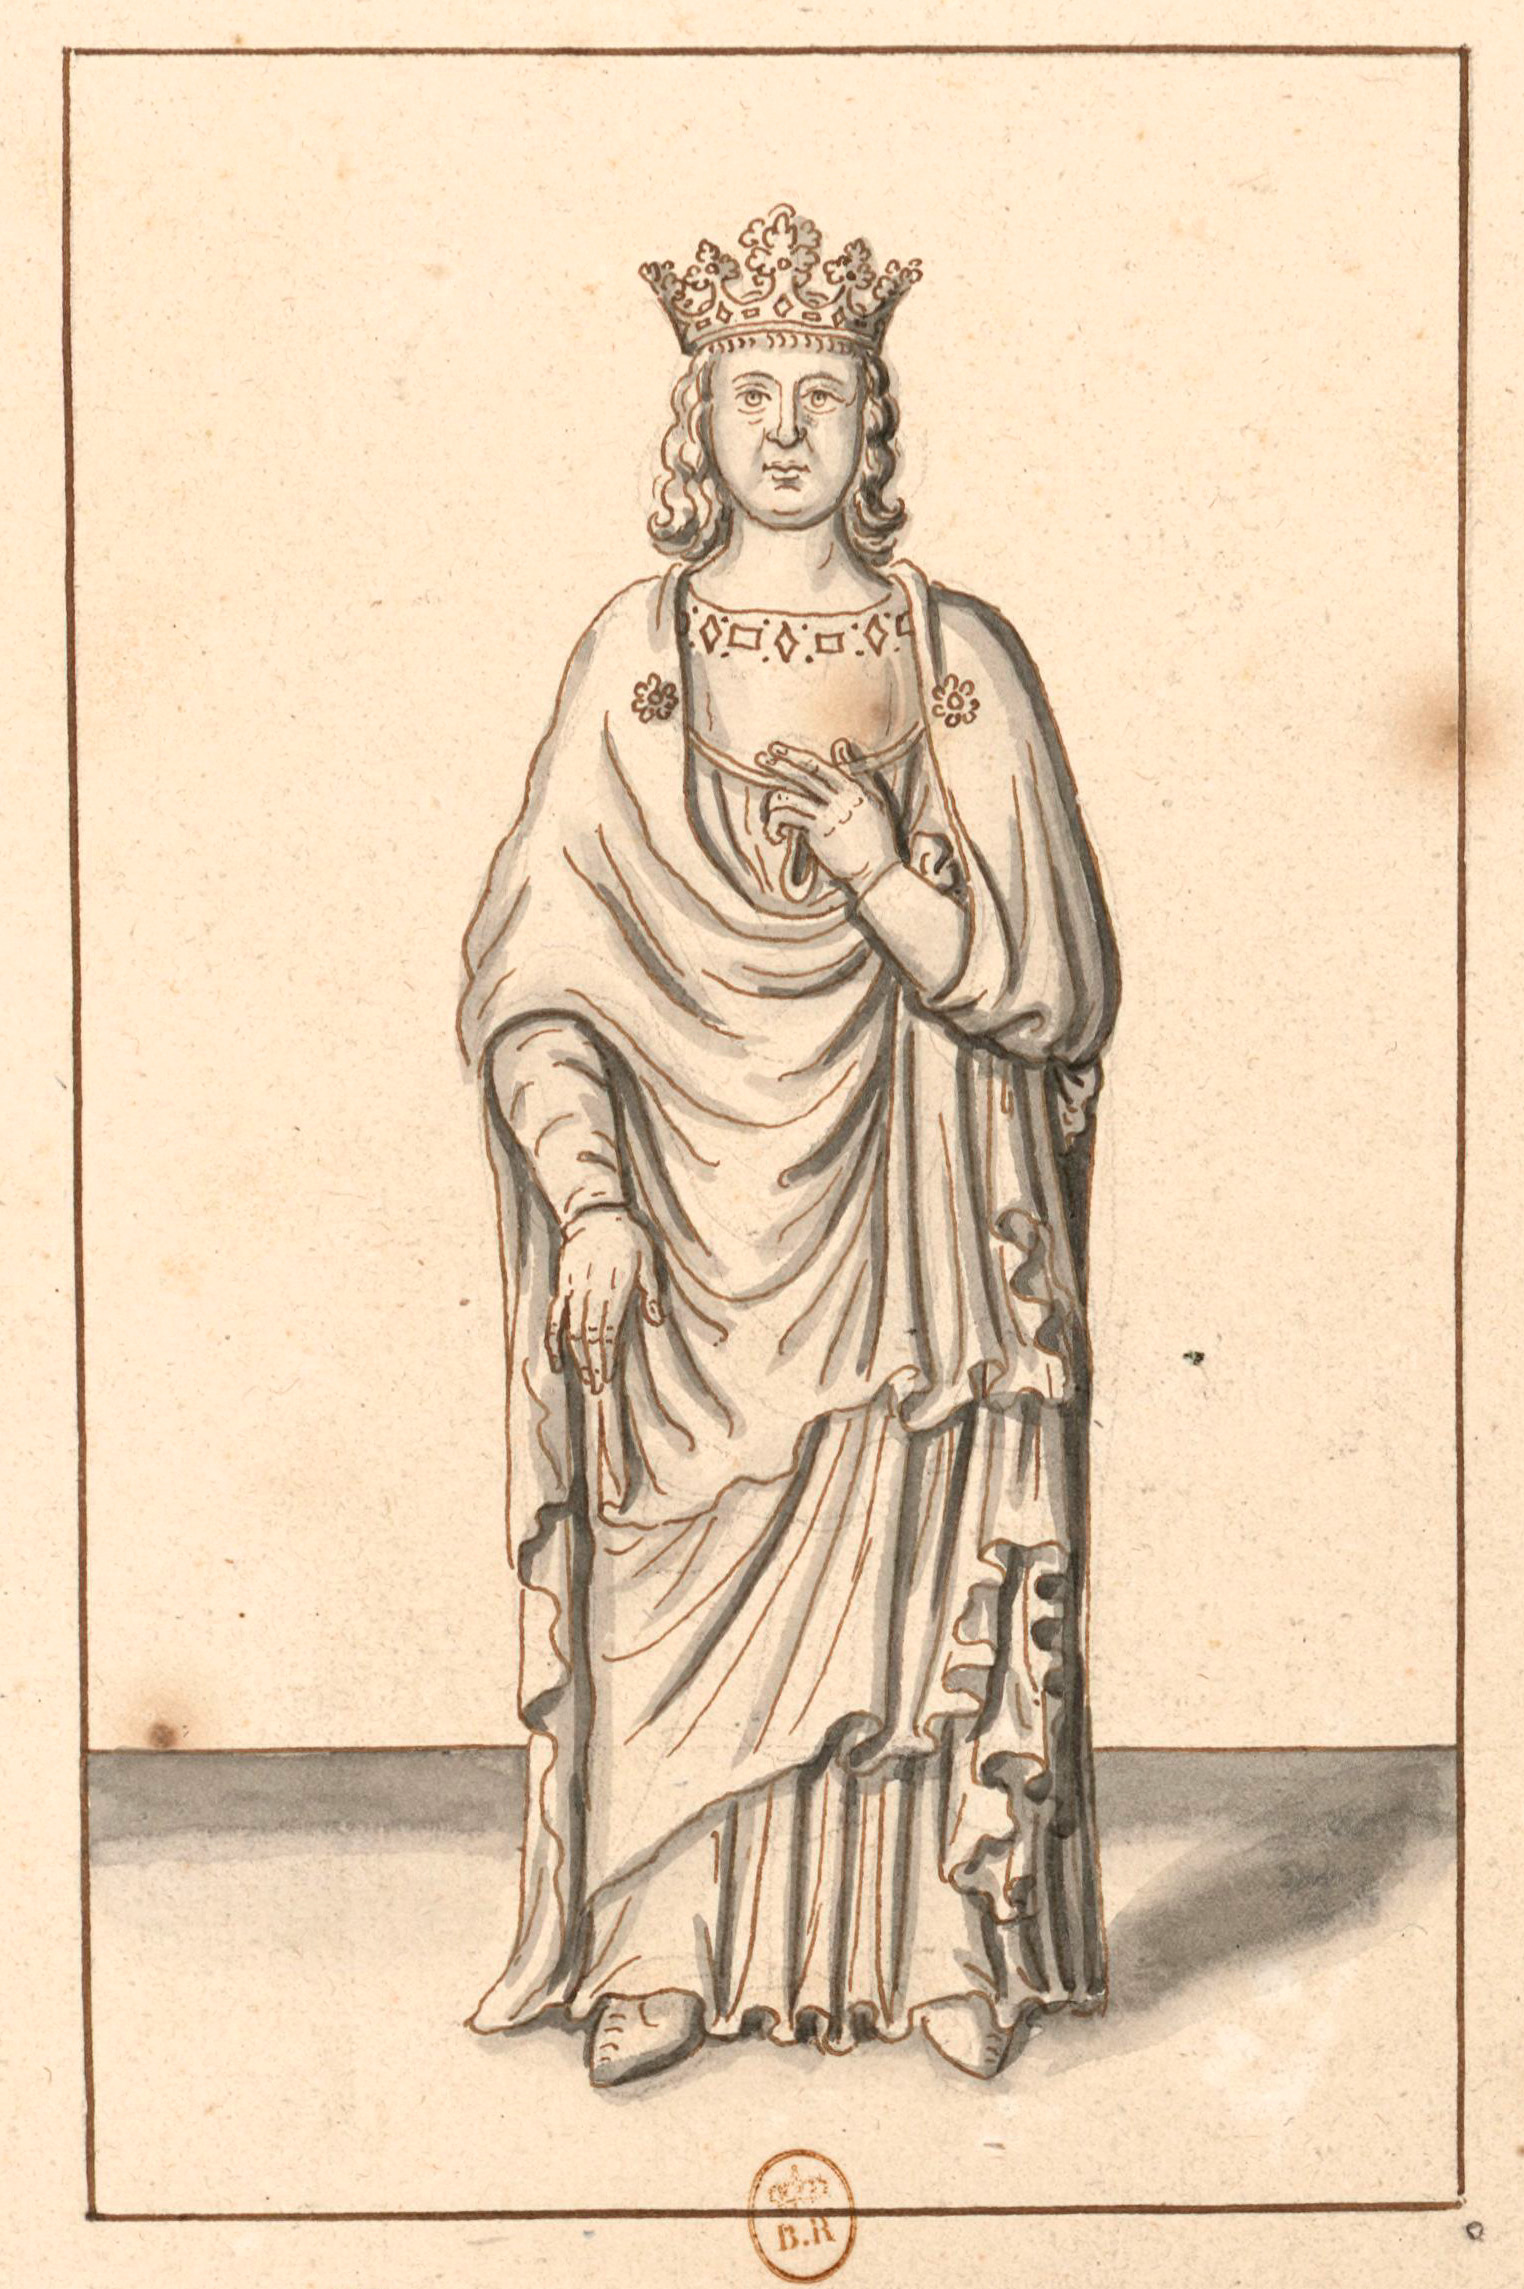 Louis X, dit le Hutin.Dessin anonyme, collection de Roger de Gaignières (BnF, département Estampes et photographie, Paris).